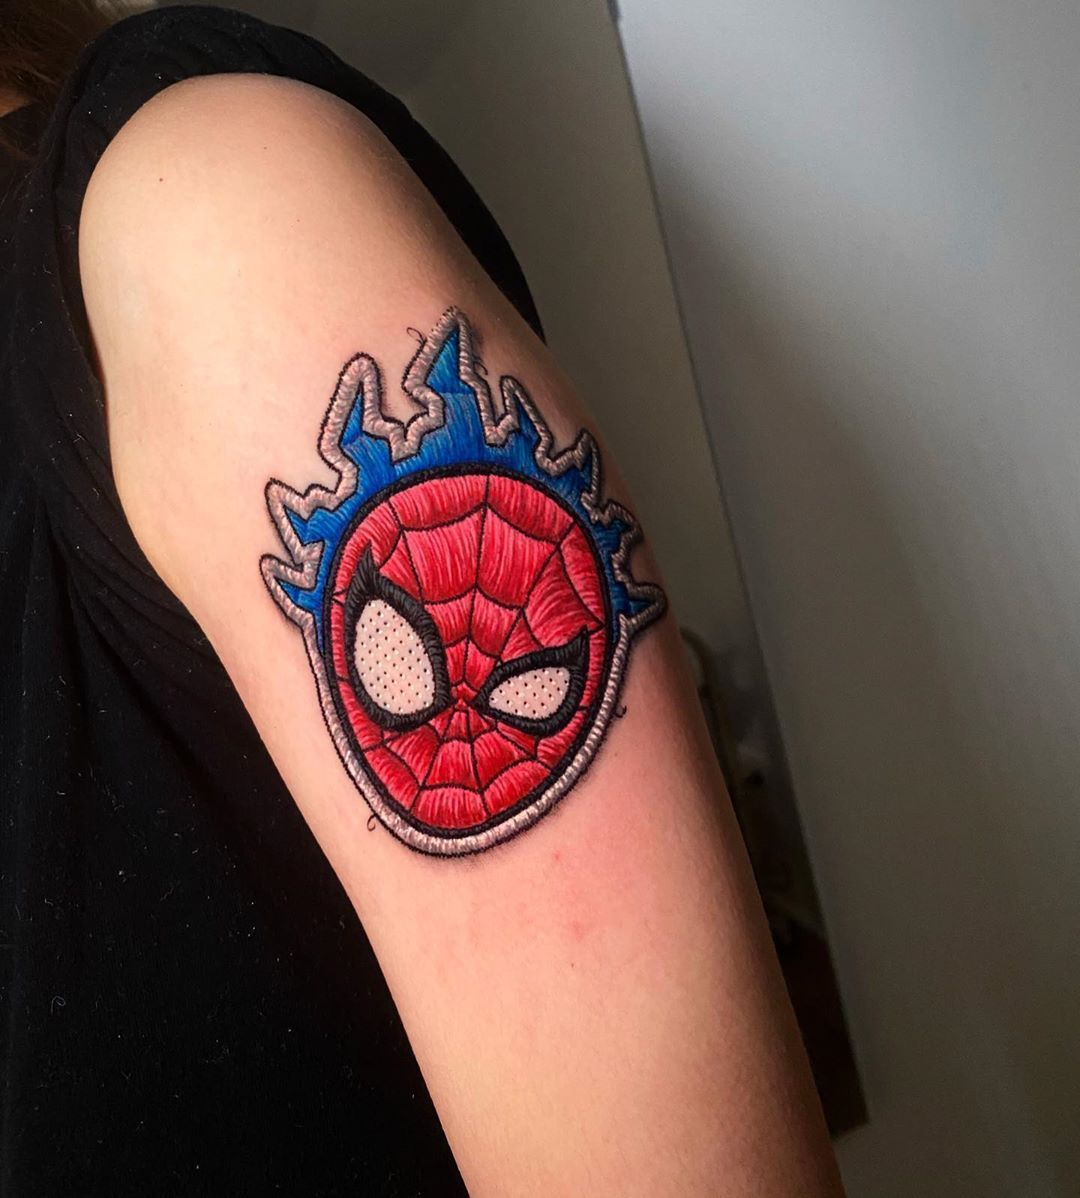 Artist Creates Embroidered Patch Tattoos That Look Like They Re Stitched Into Skin Embroidery Tattoo Flower Tattoo Designs Tattoos